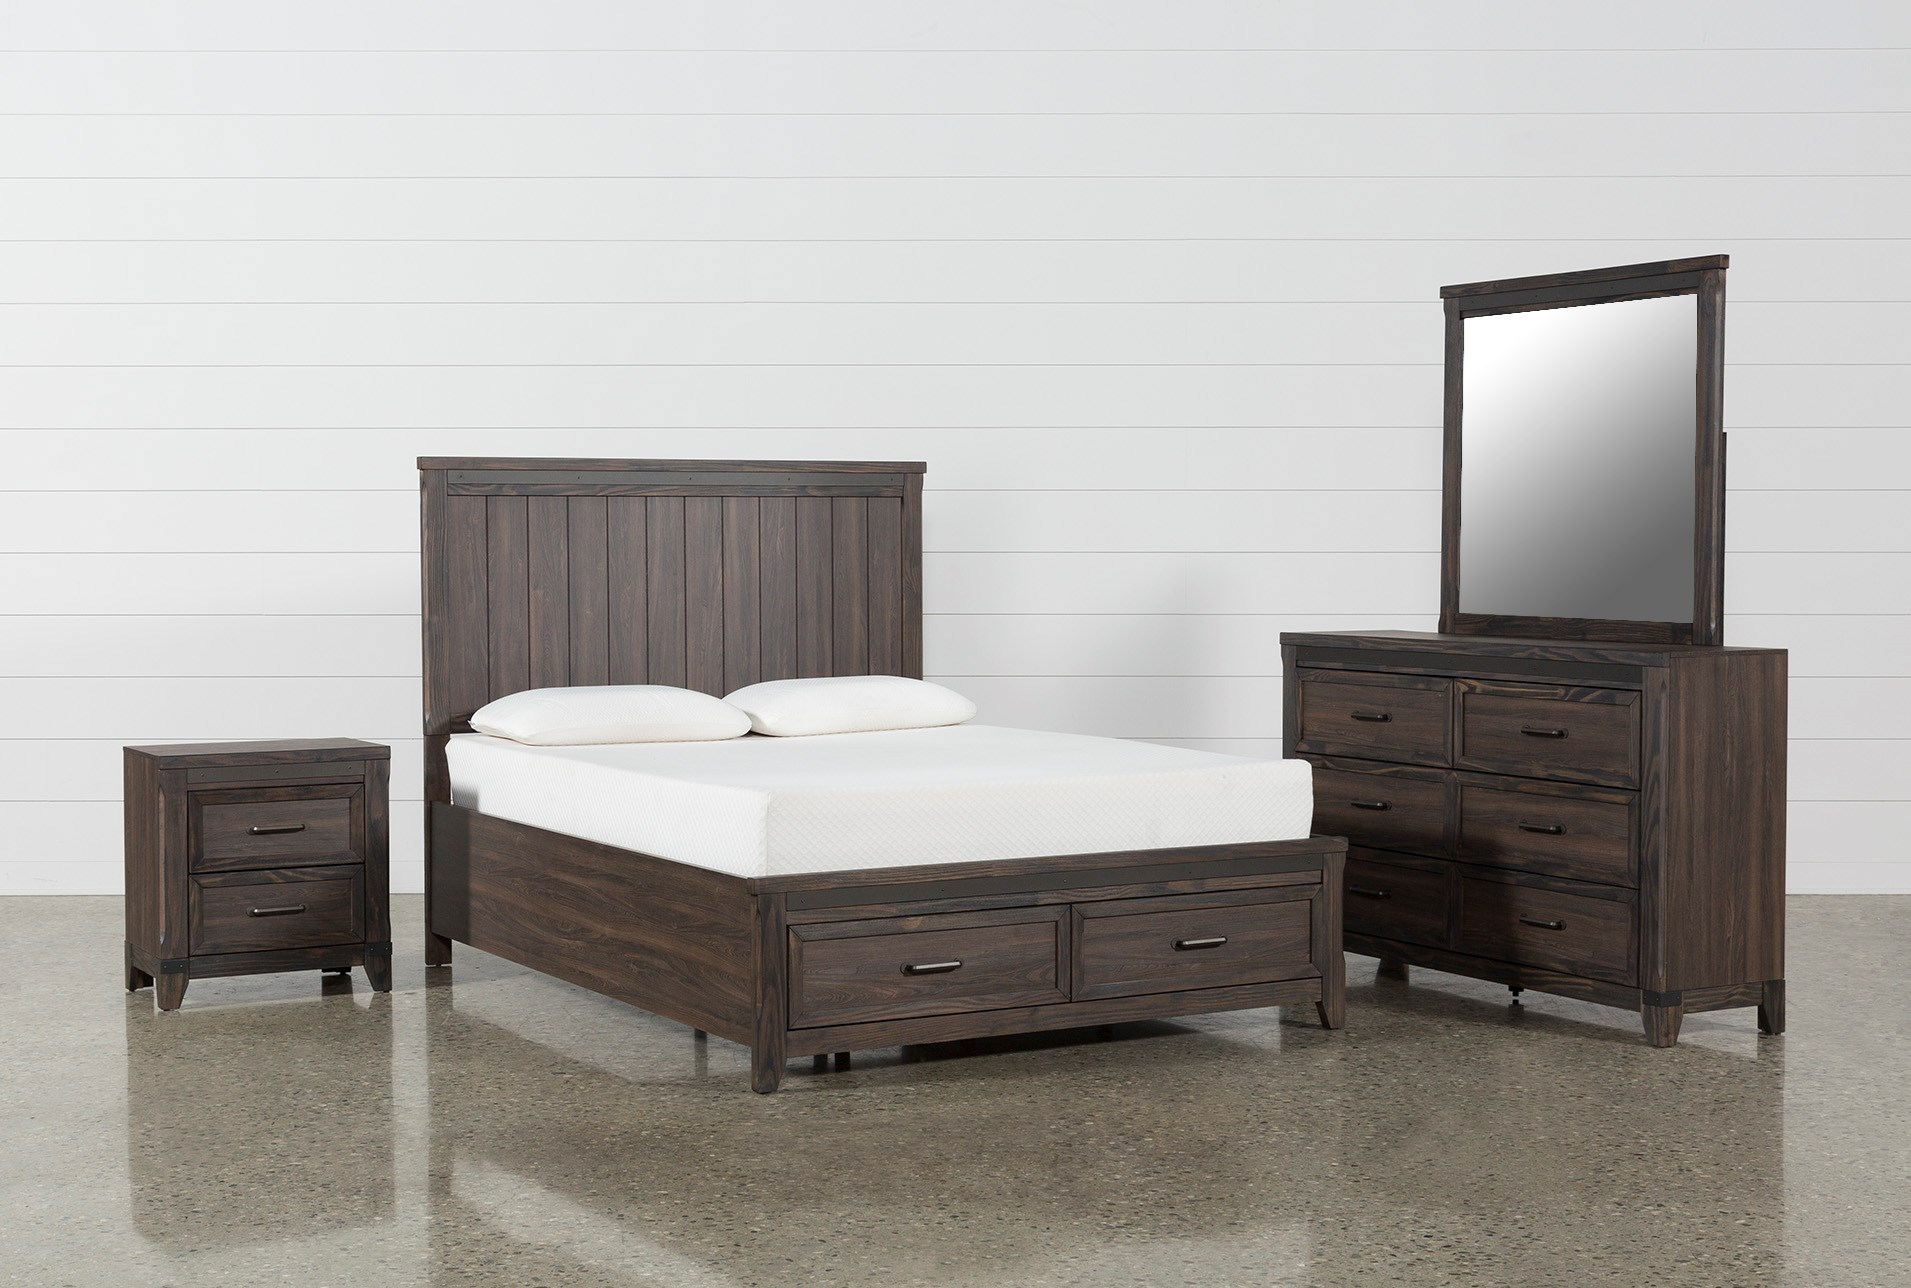 hendricks 4 piece queen bedroom set qty 1 has been successfully added to your cart - Platform Bedroom Sets